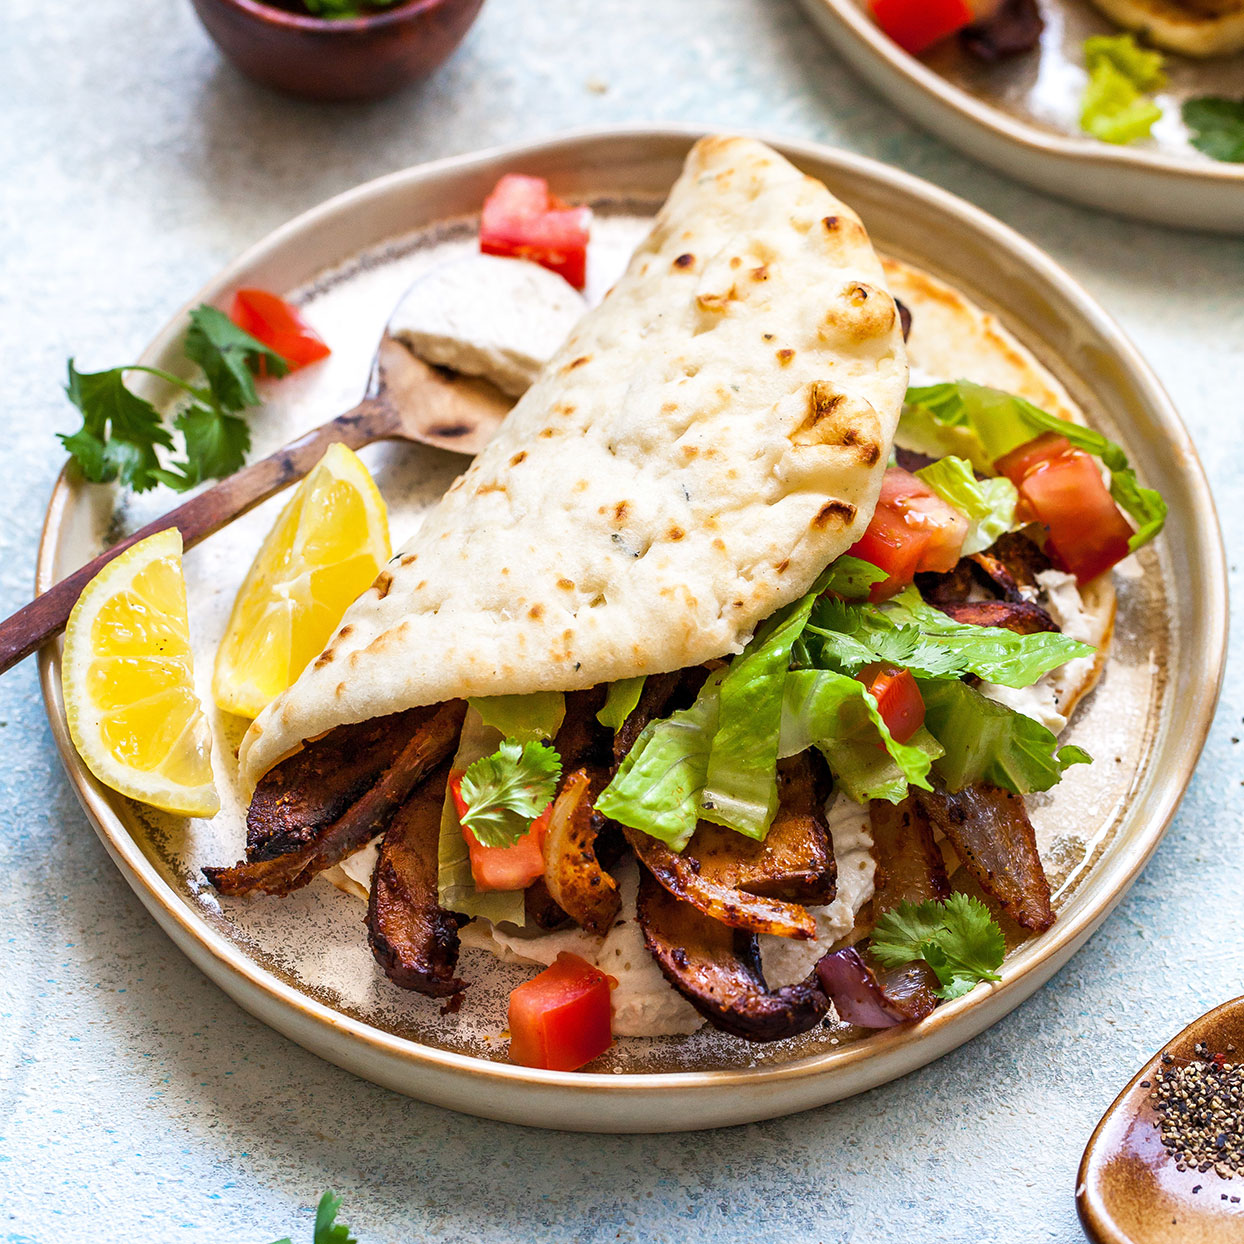 The bold spices and cooling and creamy tahini-yogurt sauce make these vegetarian pitas a home run for lunch or dinner. The meaty, umami-rich mushrooms do enough heavy lifting so that you don't miss the meat at all. Source: EatingWell.com, May 2020